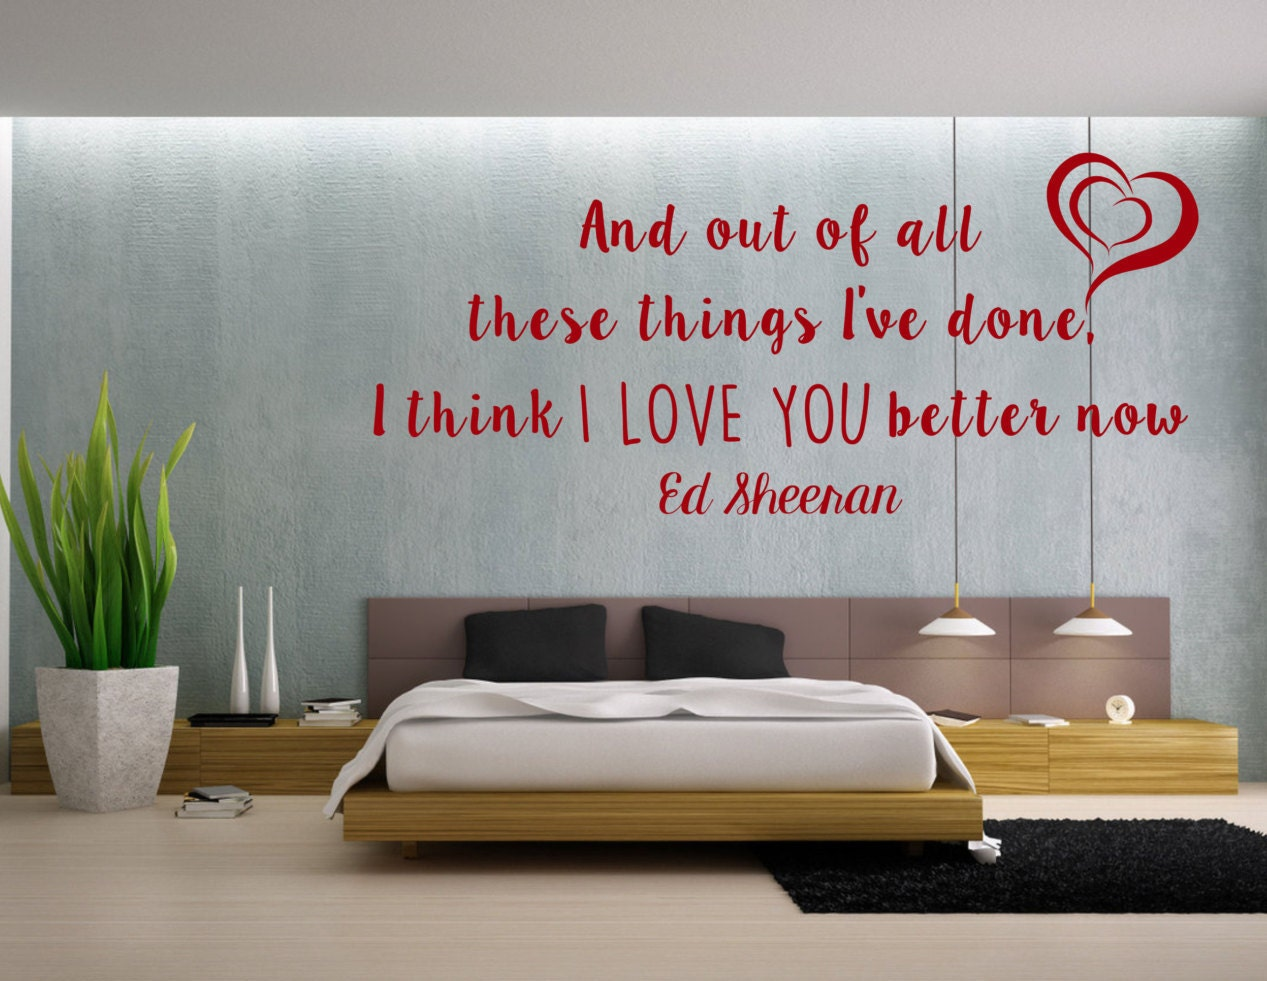 Lego House Inspired Song Lyrics Ed Sheeran Wall Art Vinyl